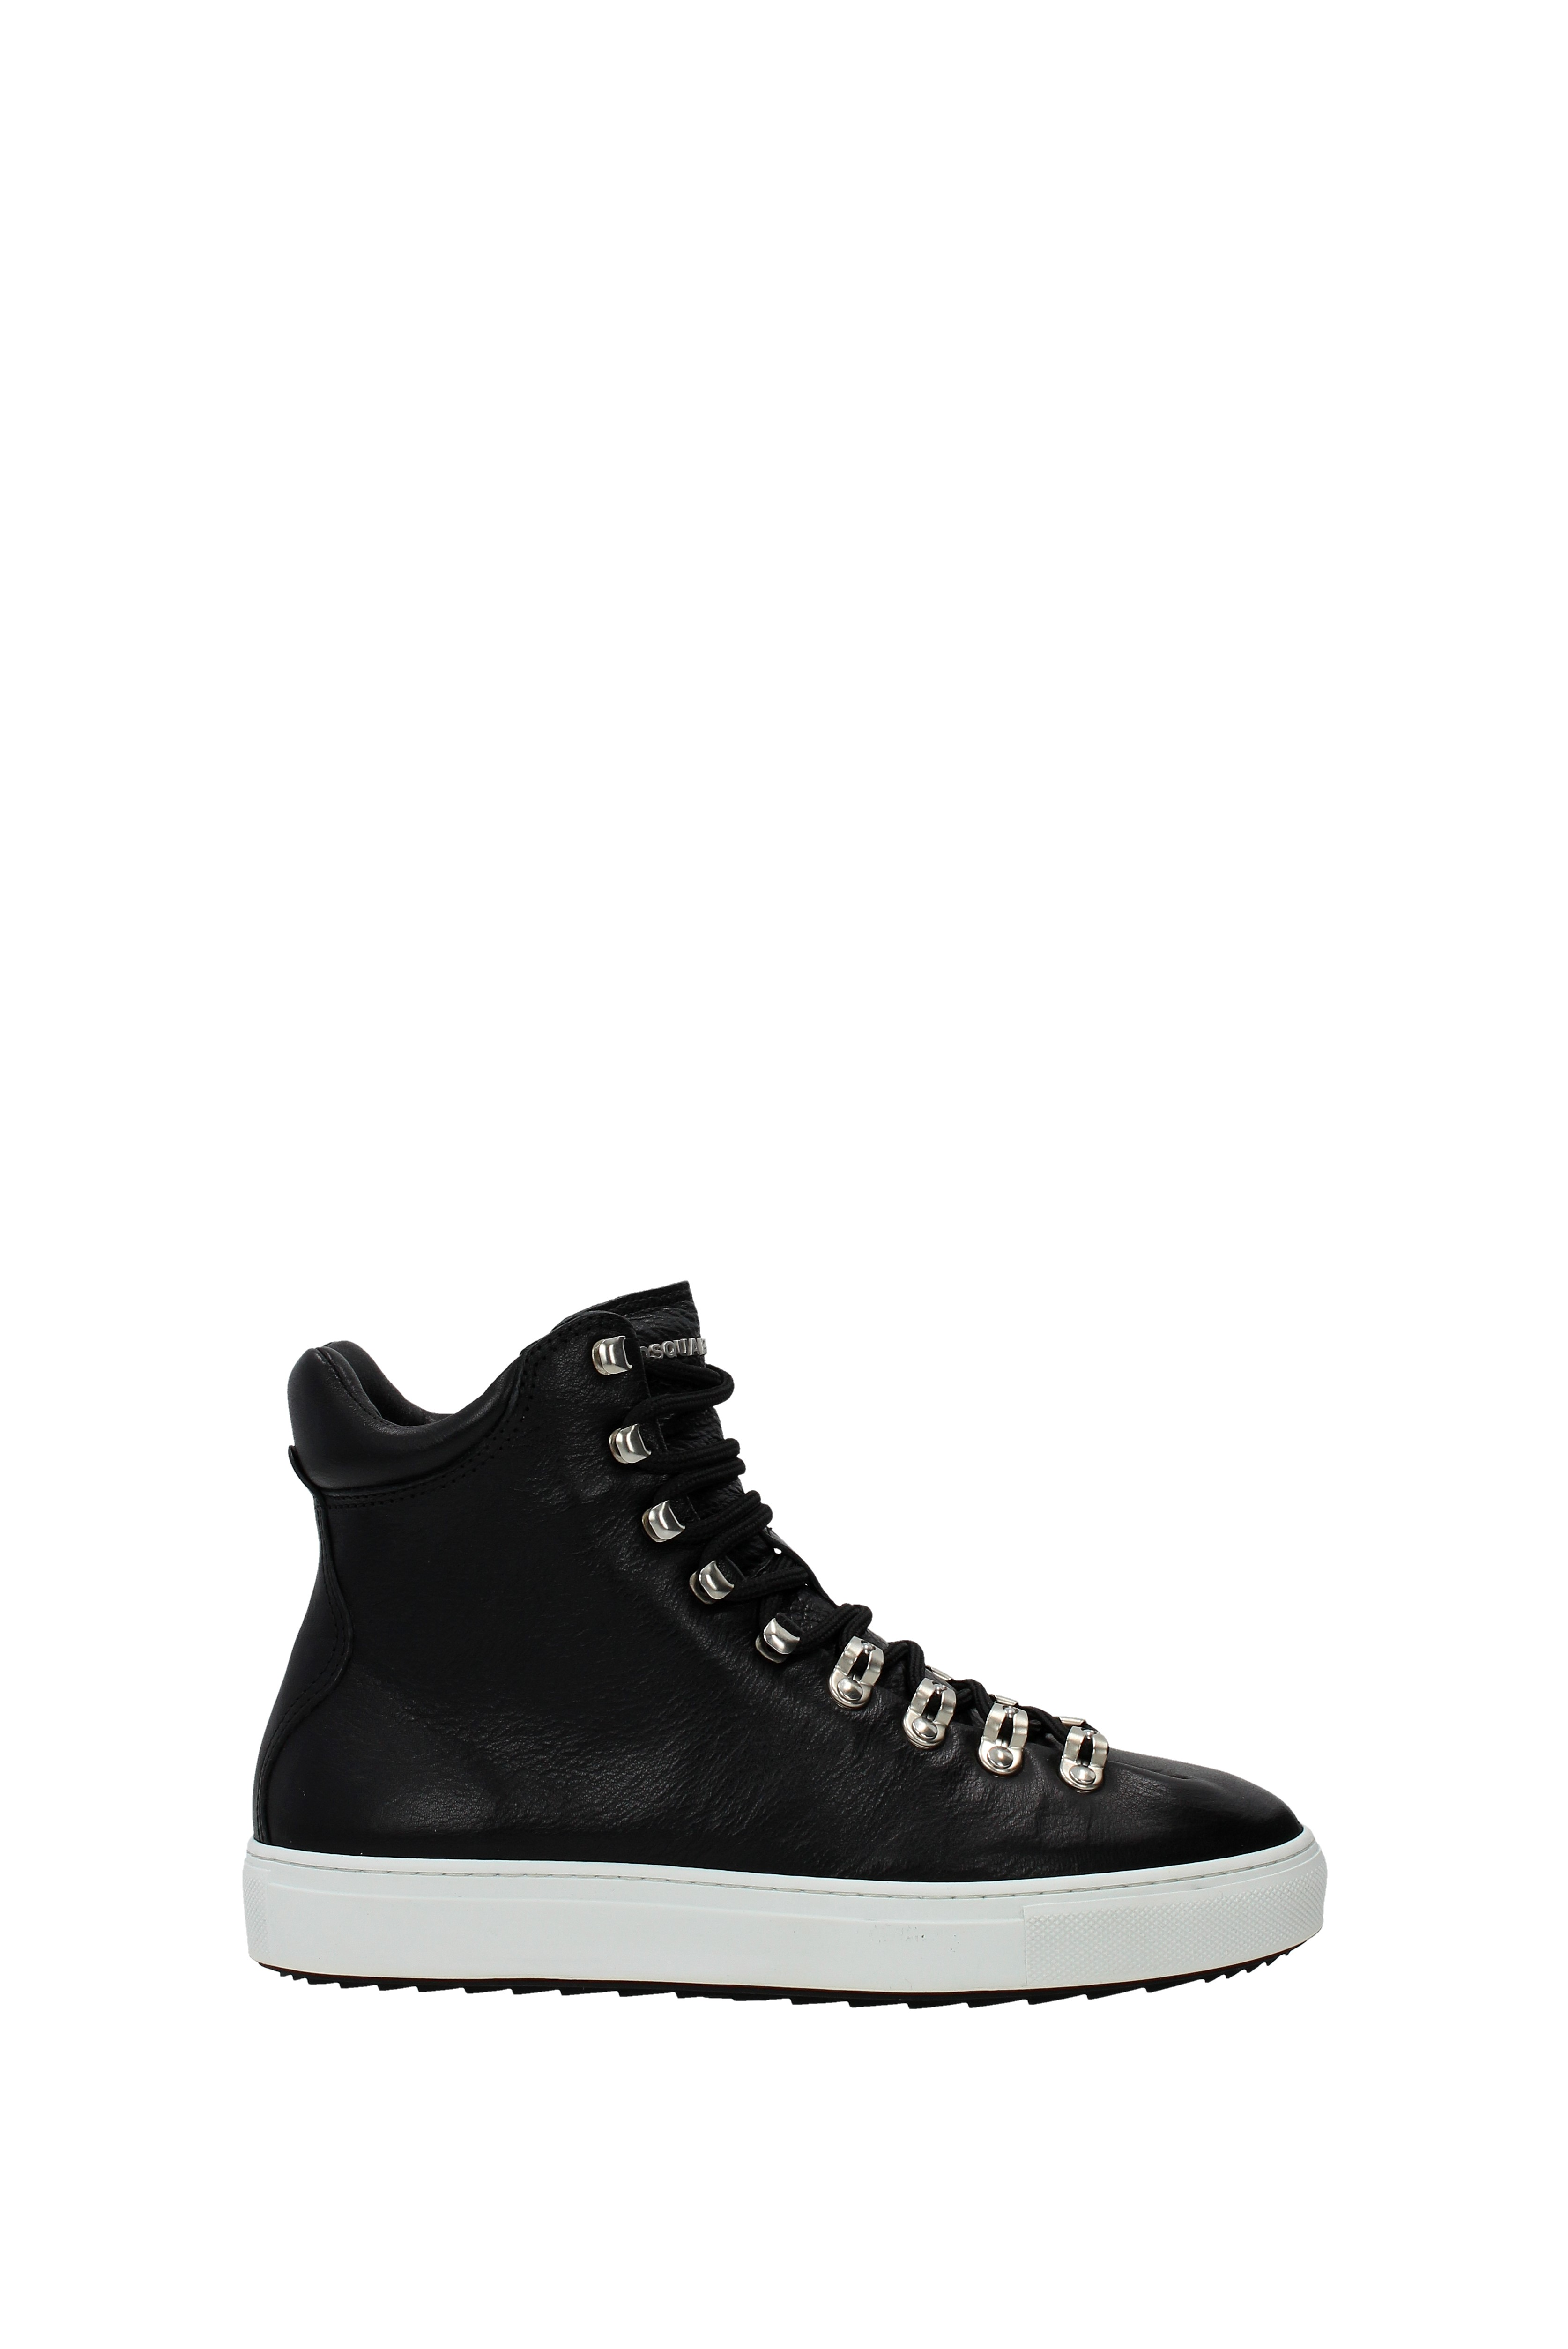 Sneakers Dsquared2 whistler Uomo - Pelle (SN117015)